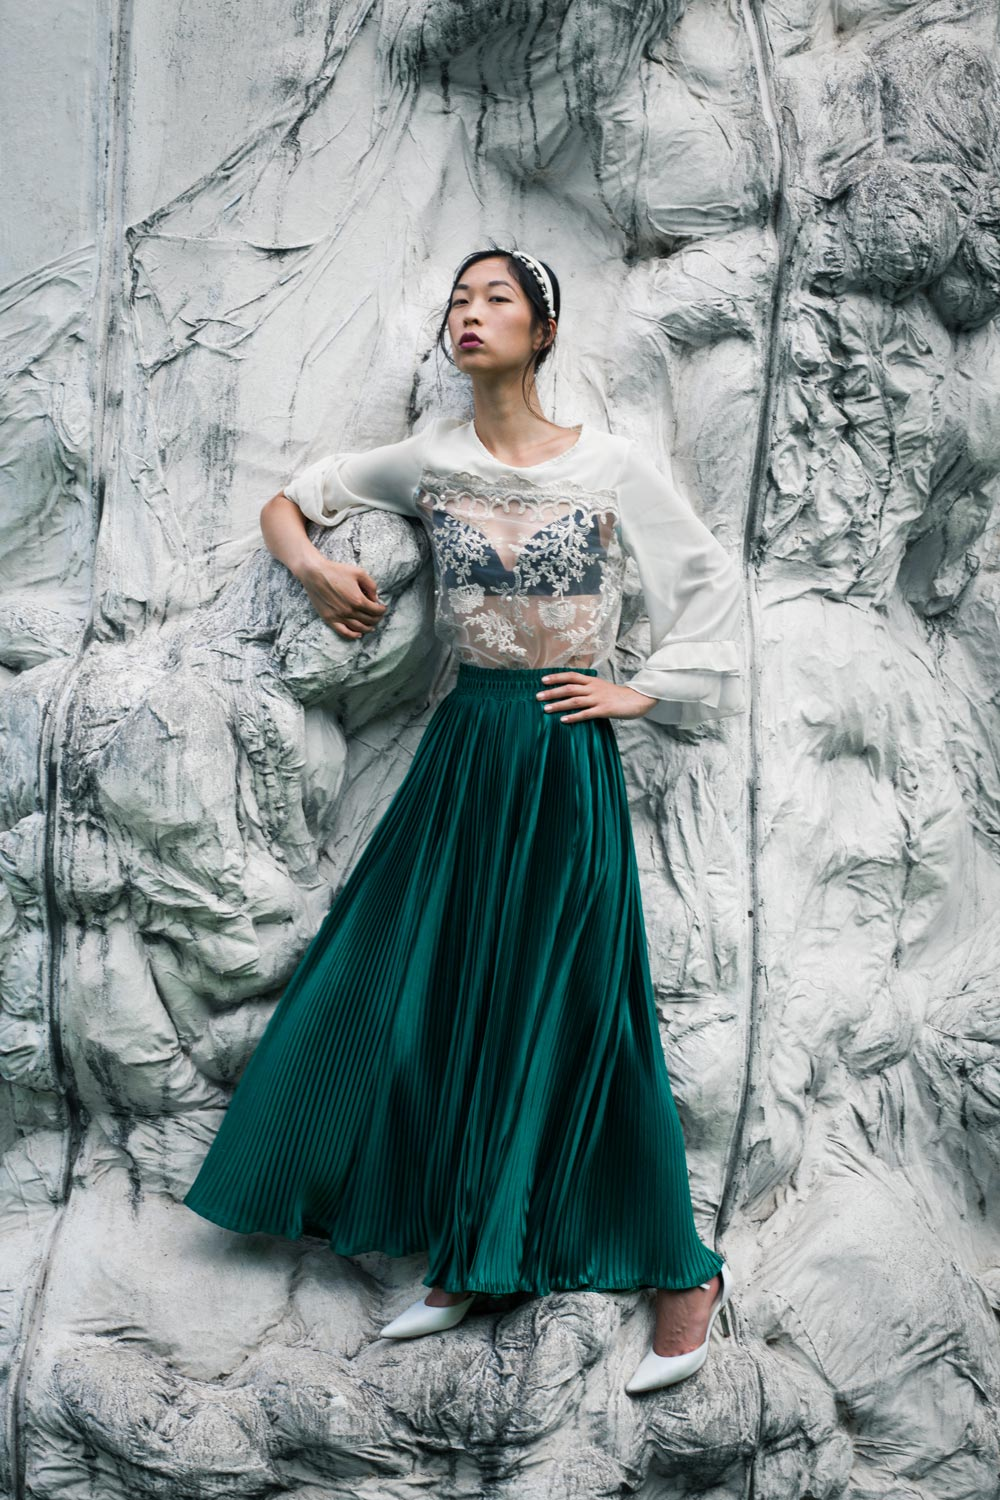 fashion editorial, fashion inspiration, cissy zhang